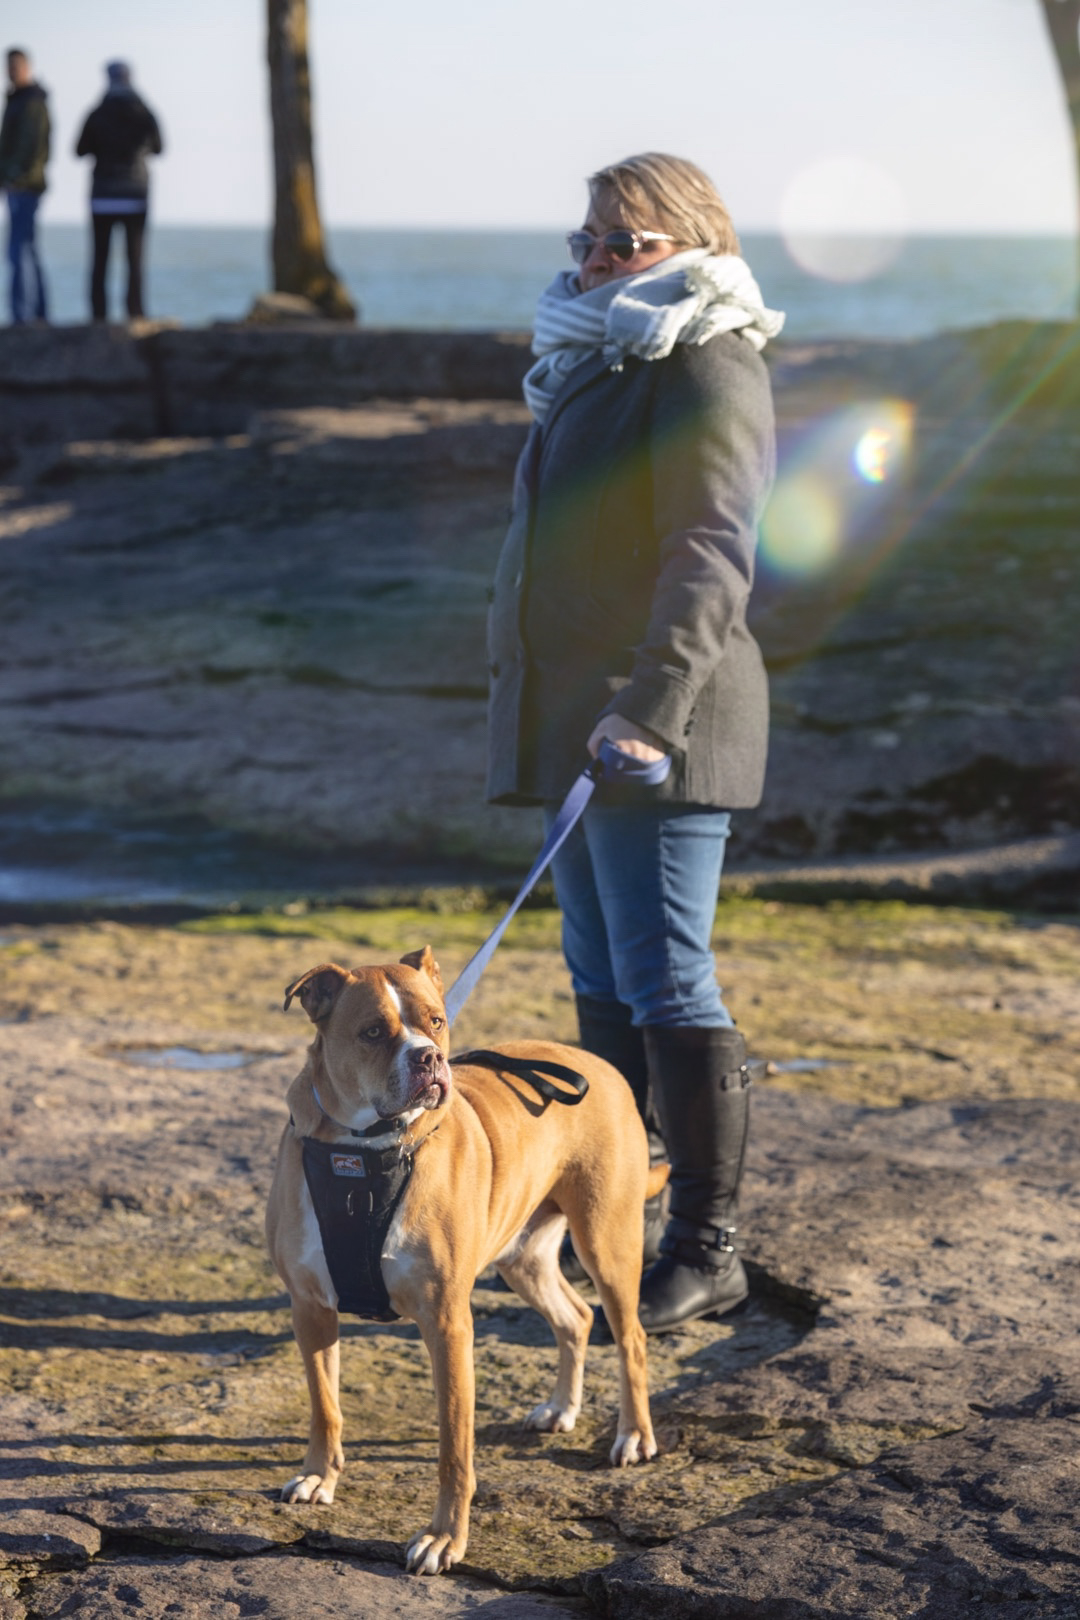 Light casting down on a woman and her boxer dog